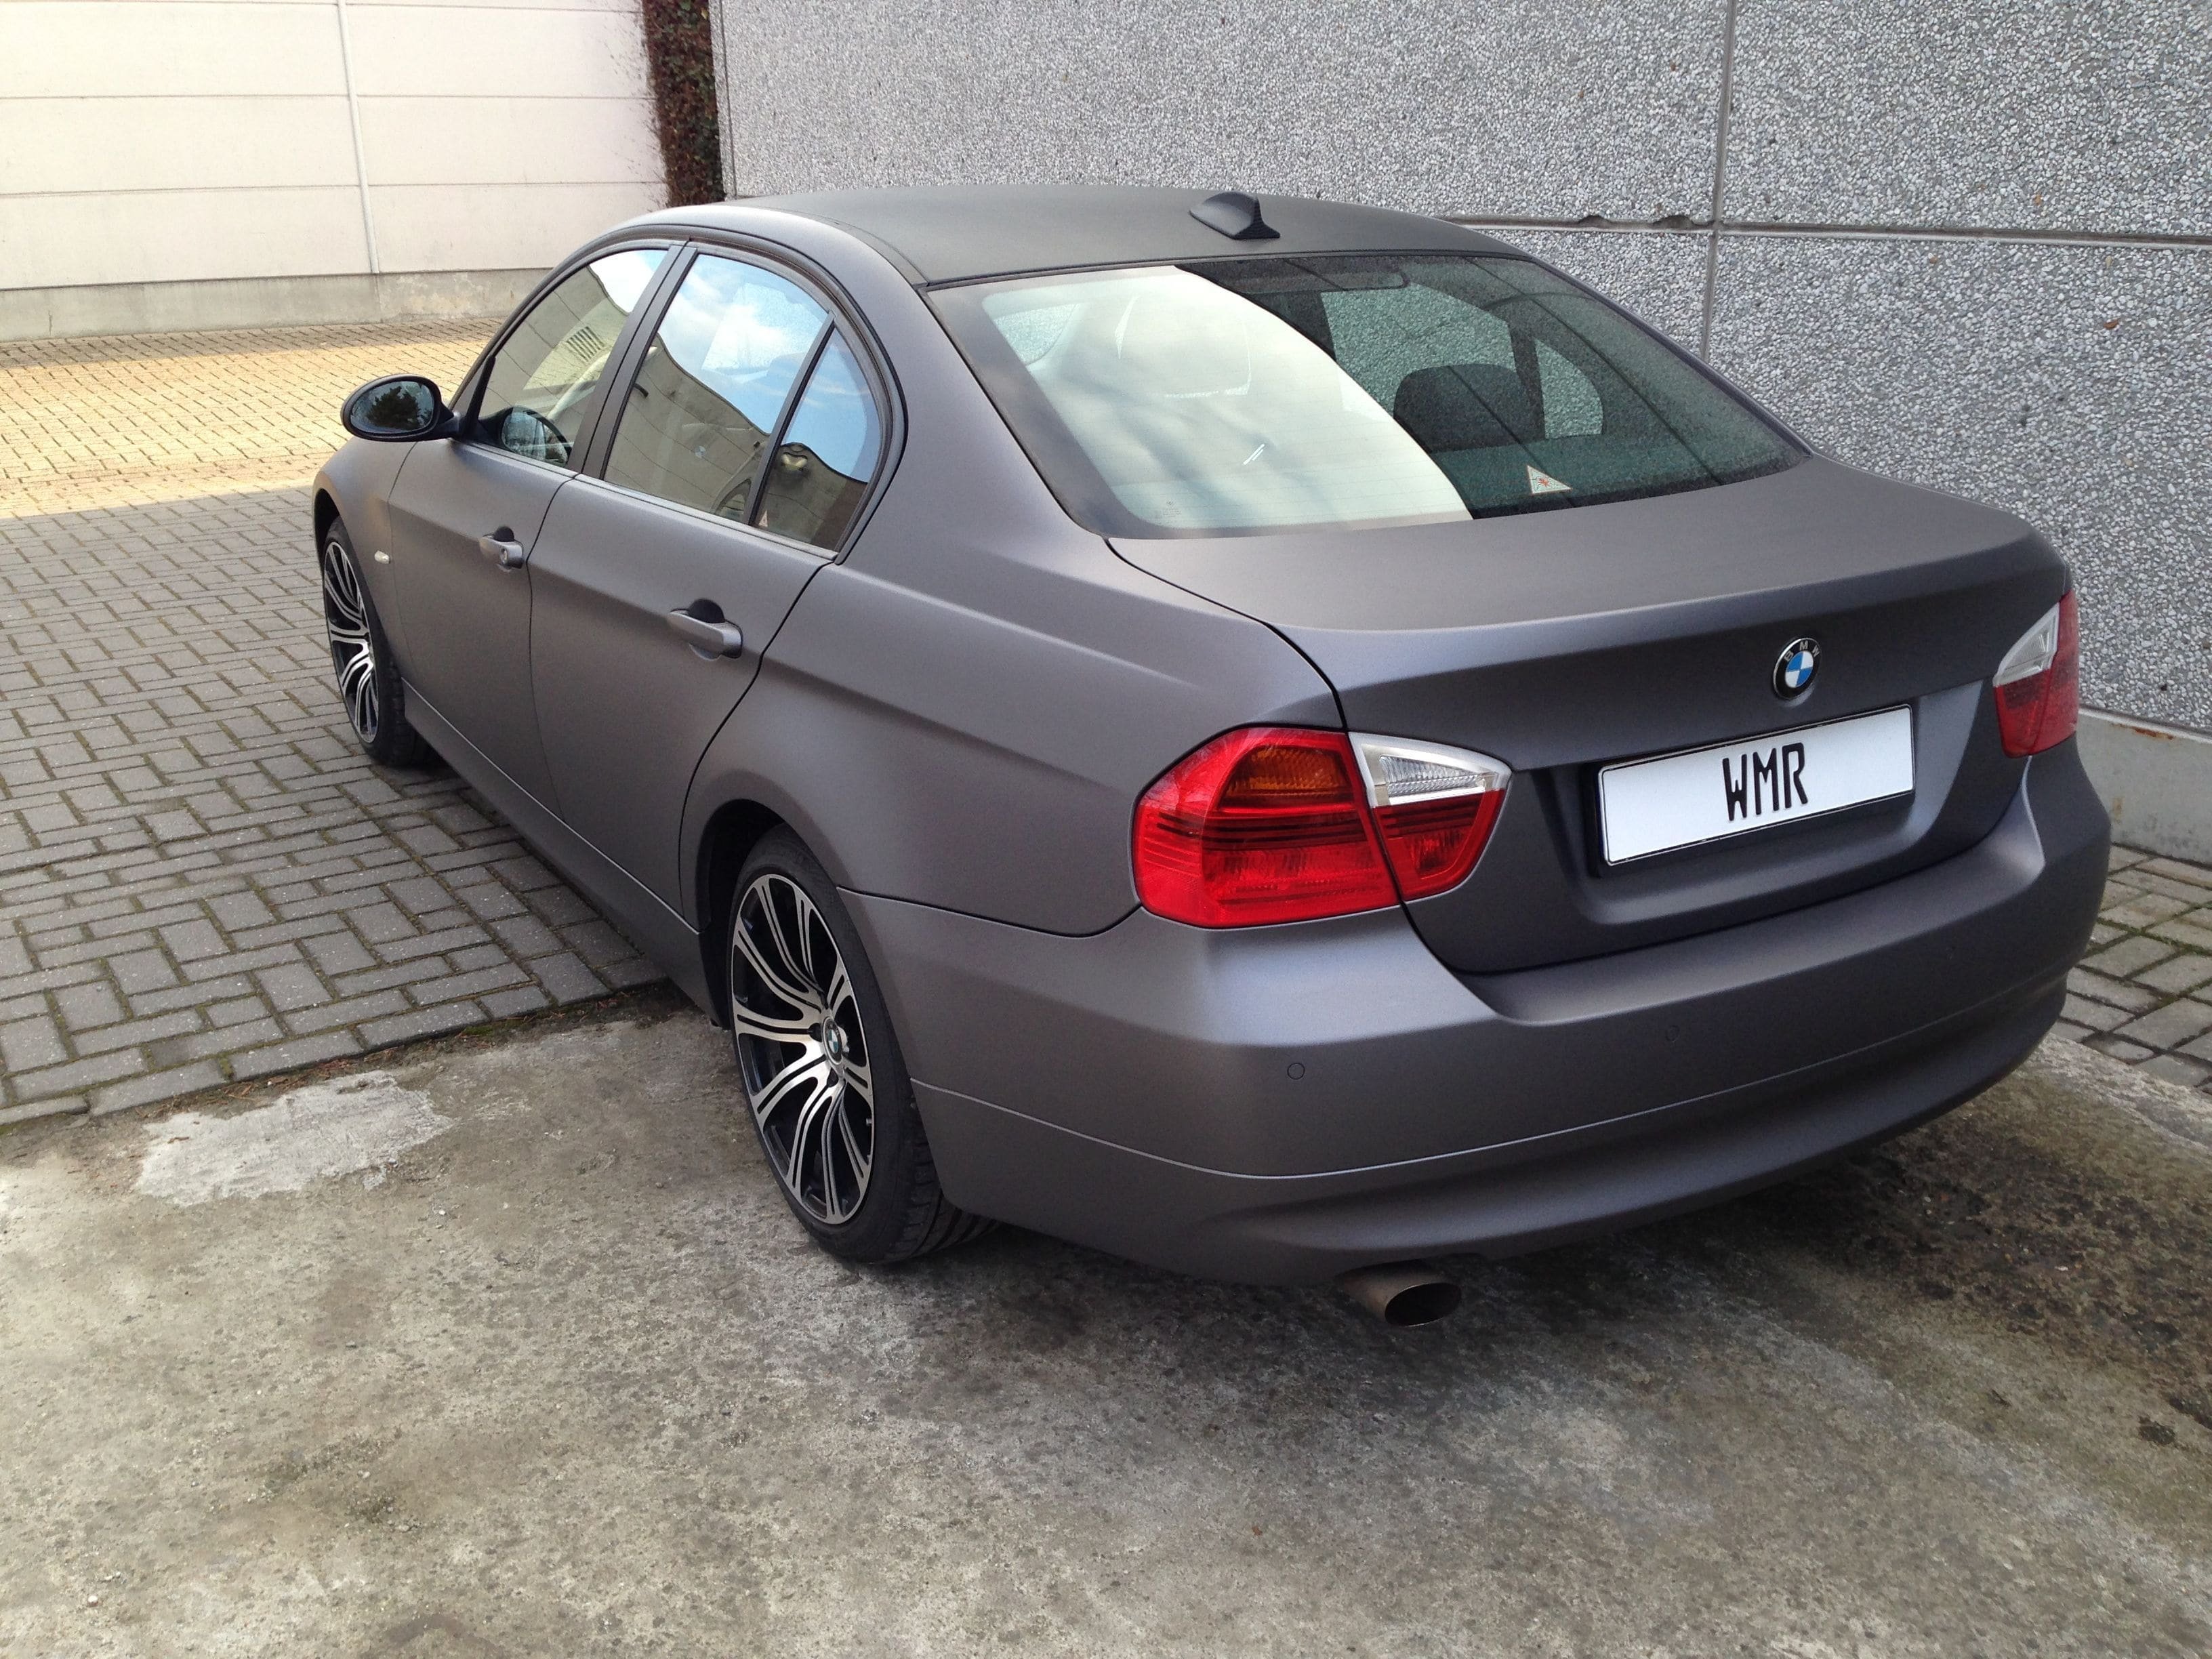 BMW E90 met Gunpowder Wrap, Carwrapping door Wrapmyride.nu Foto-nr:5390, ©2021